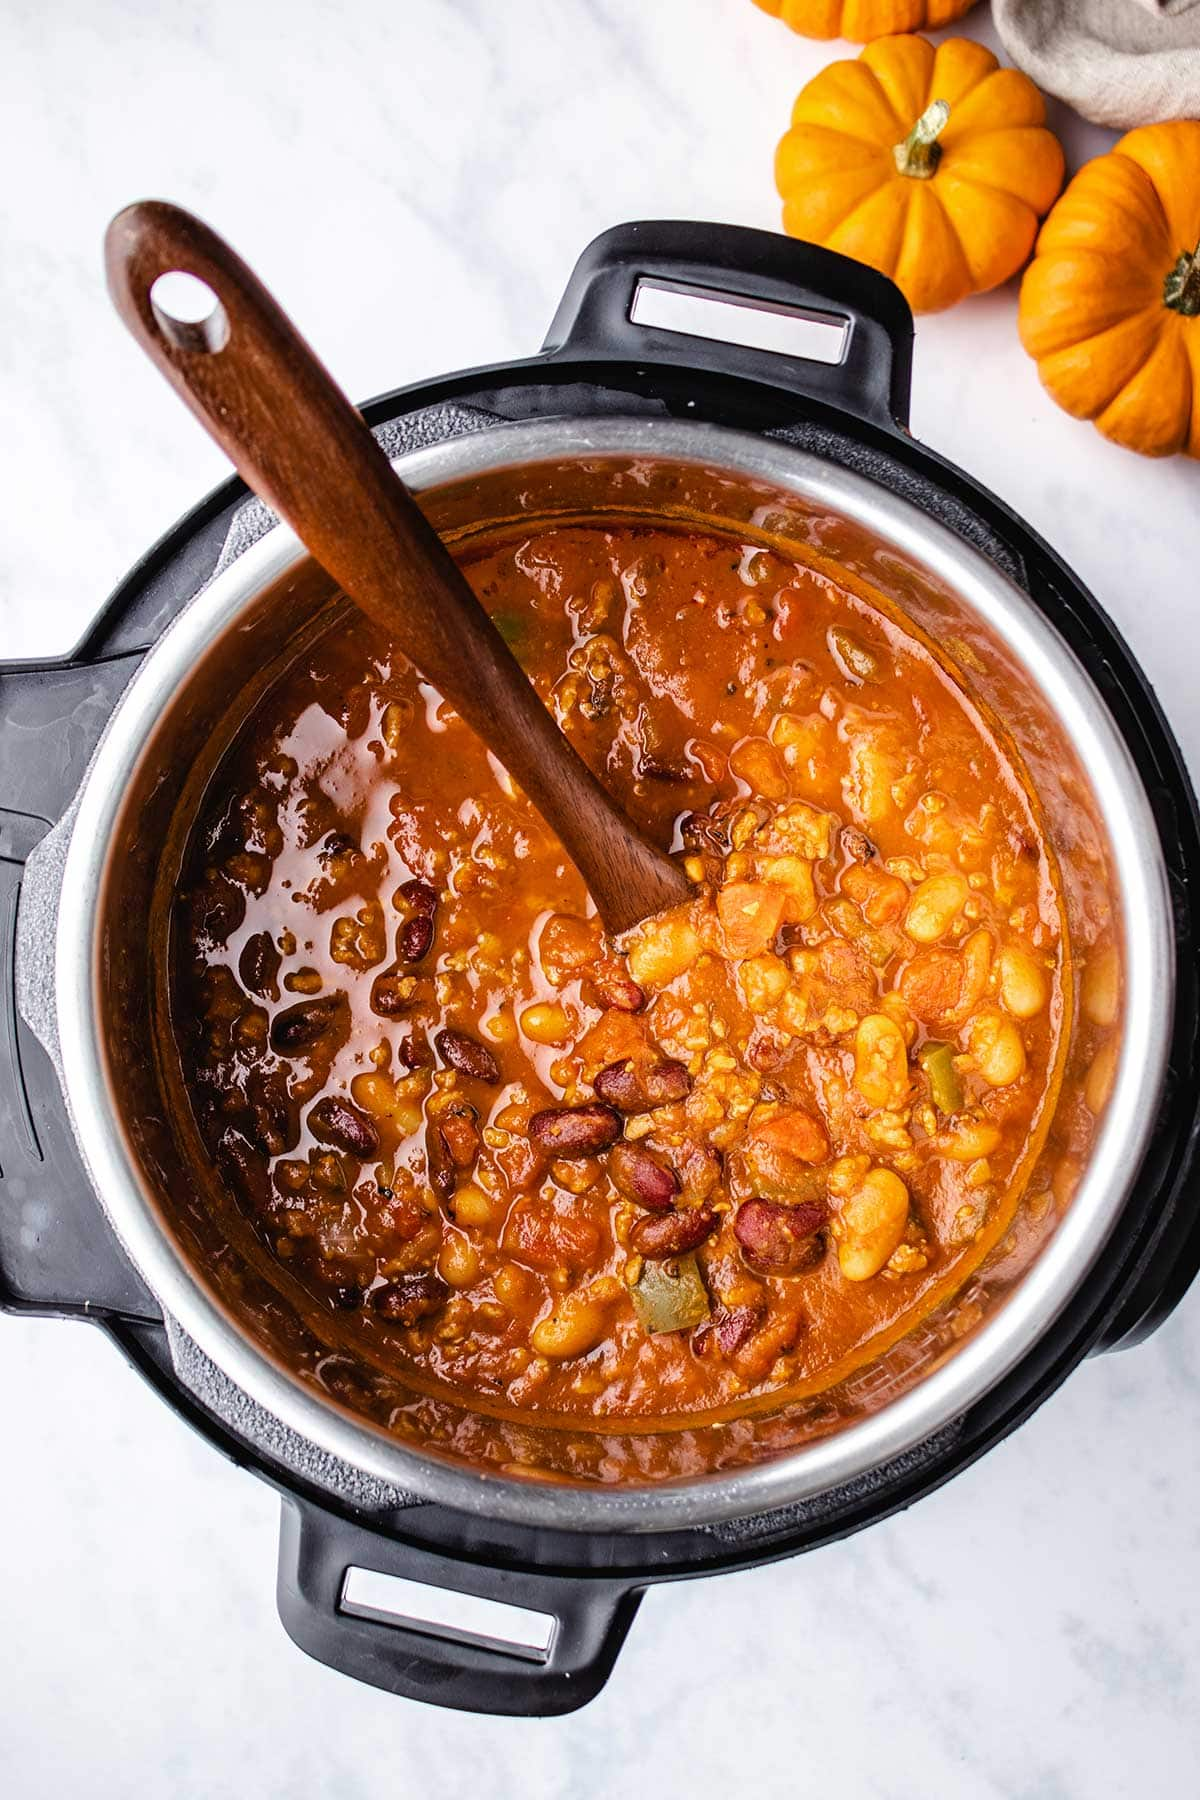 Pumpkin Turkey Chili in an Instant Pot being stirred with a wooden spoon.